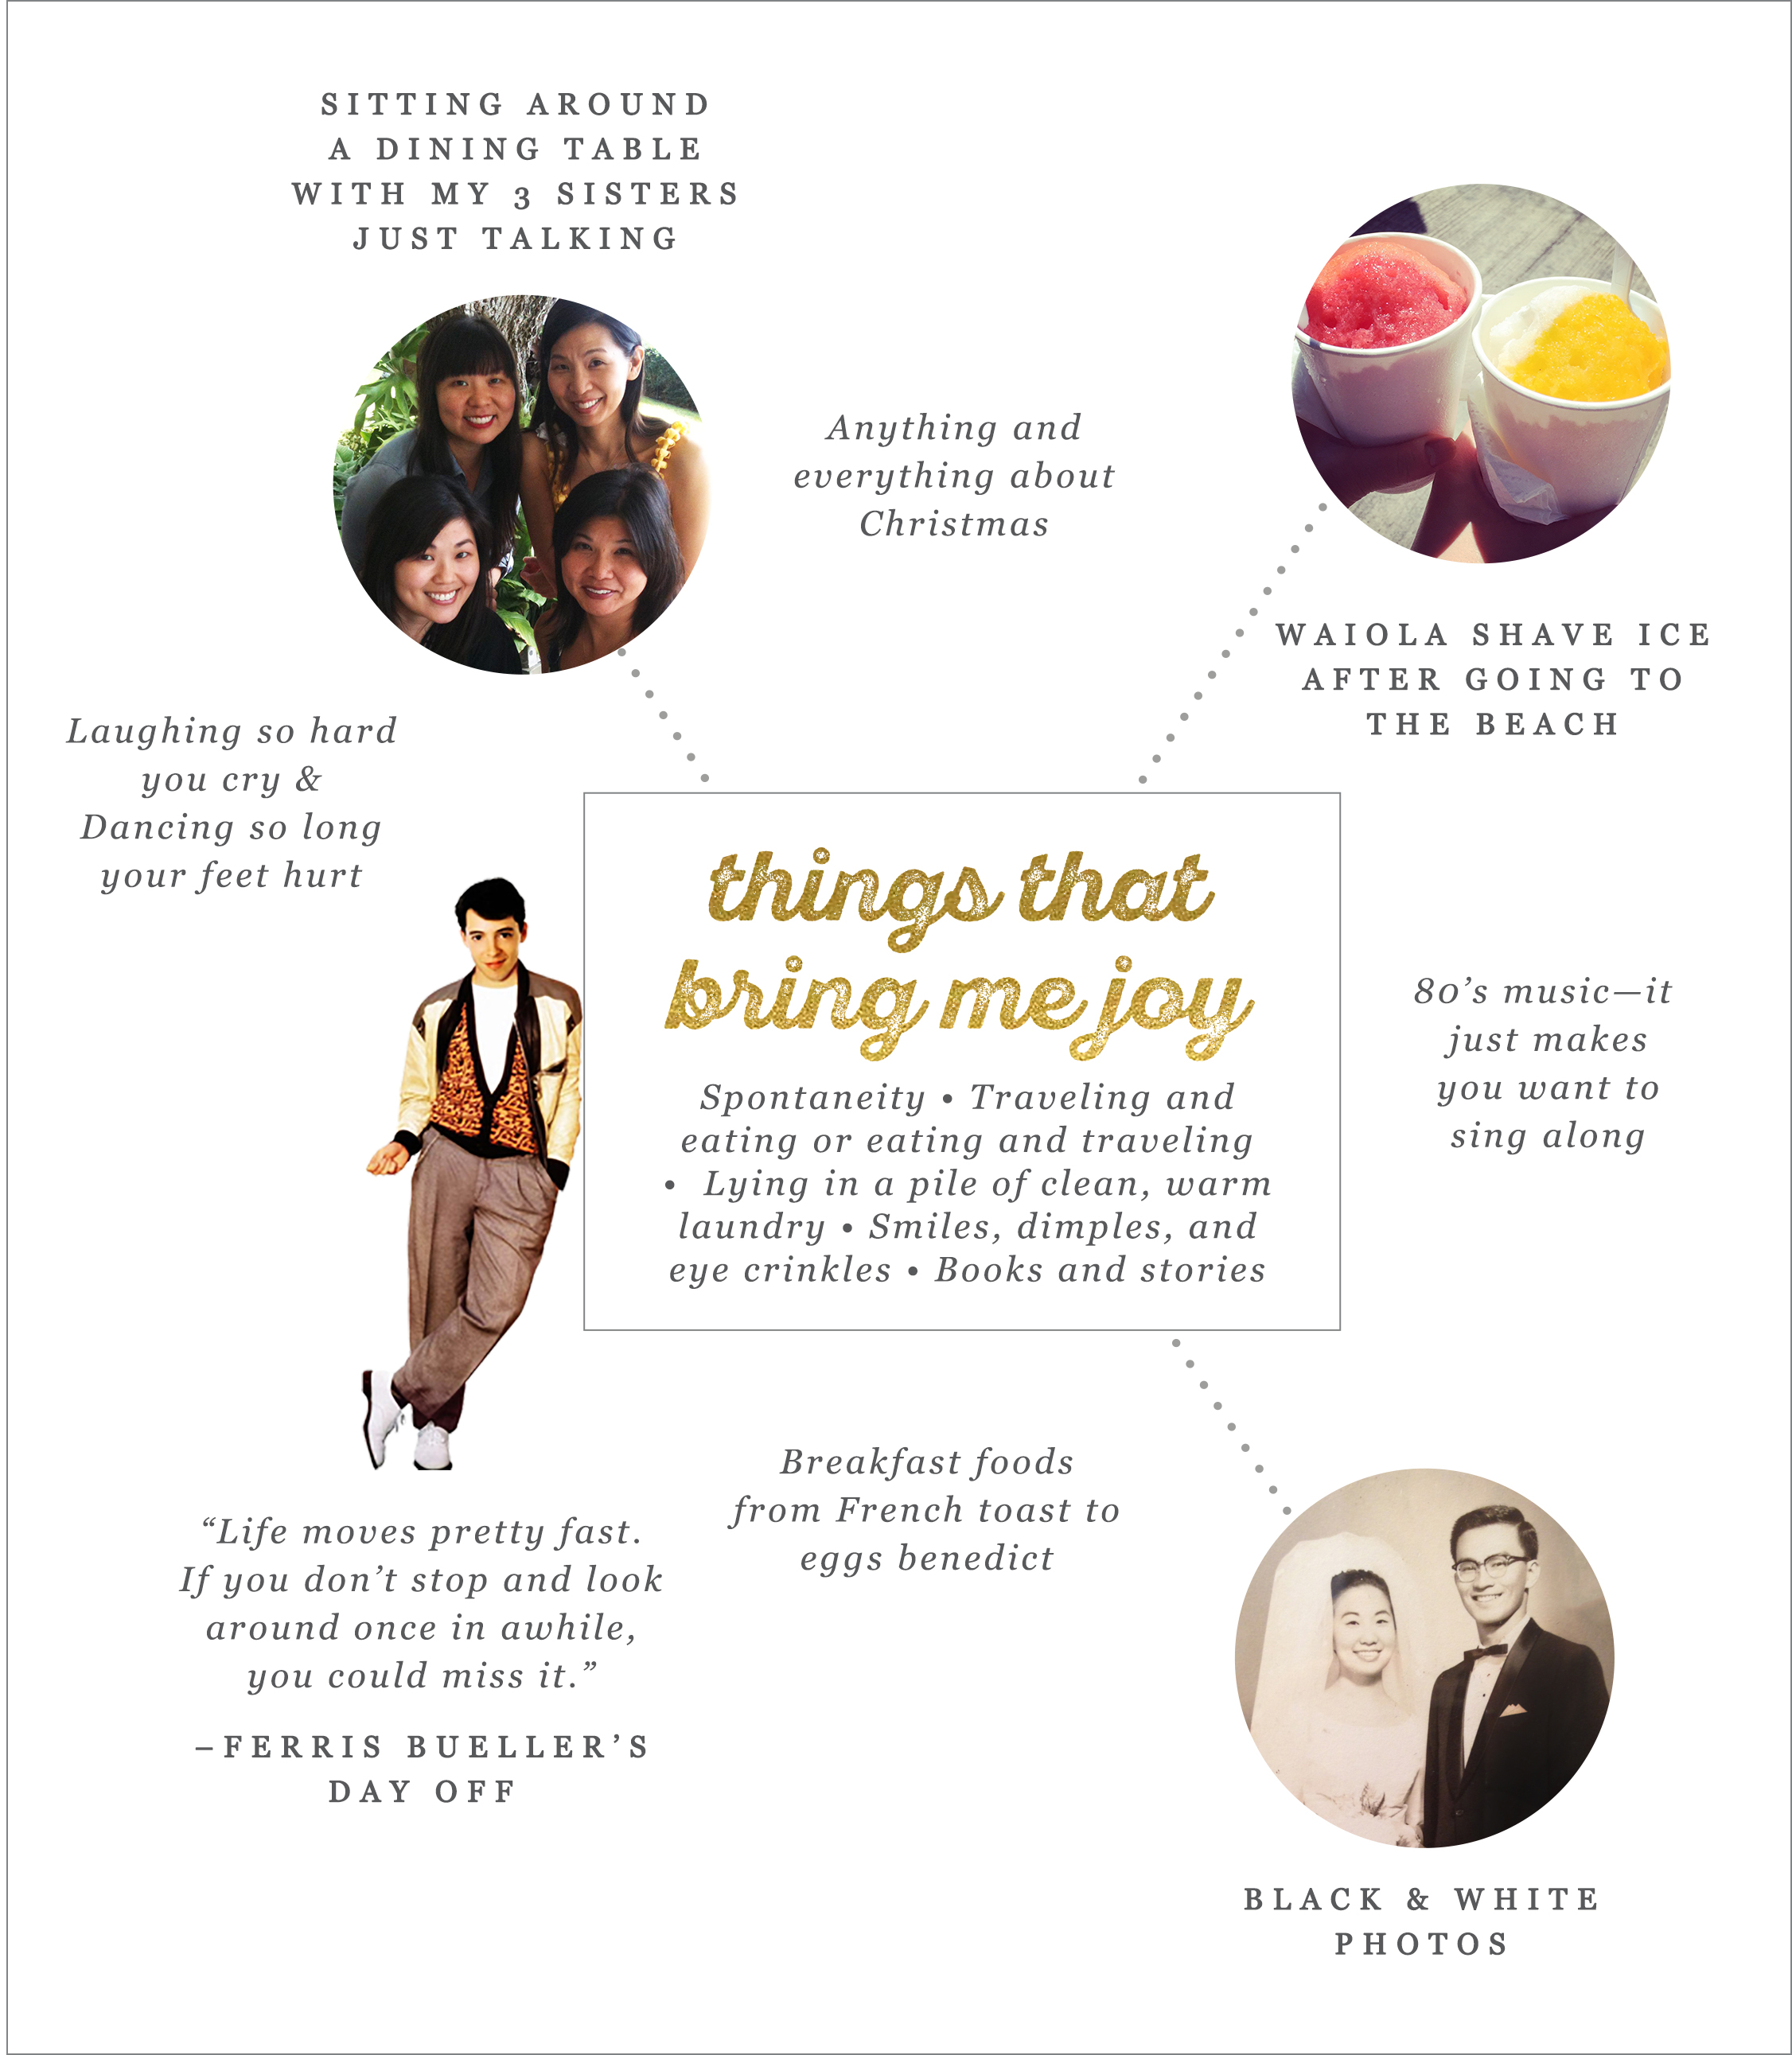 Jamie Chang Mango Muse Events About Things that bring me joy